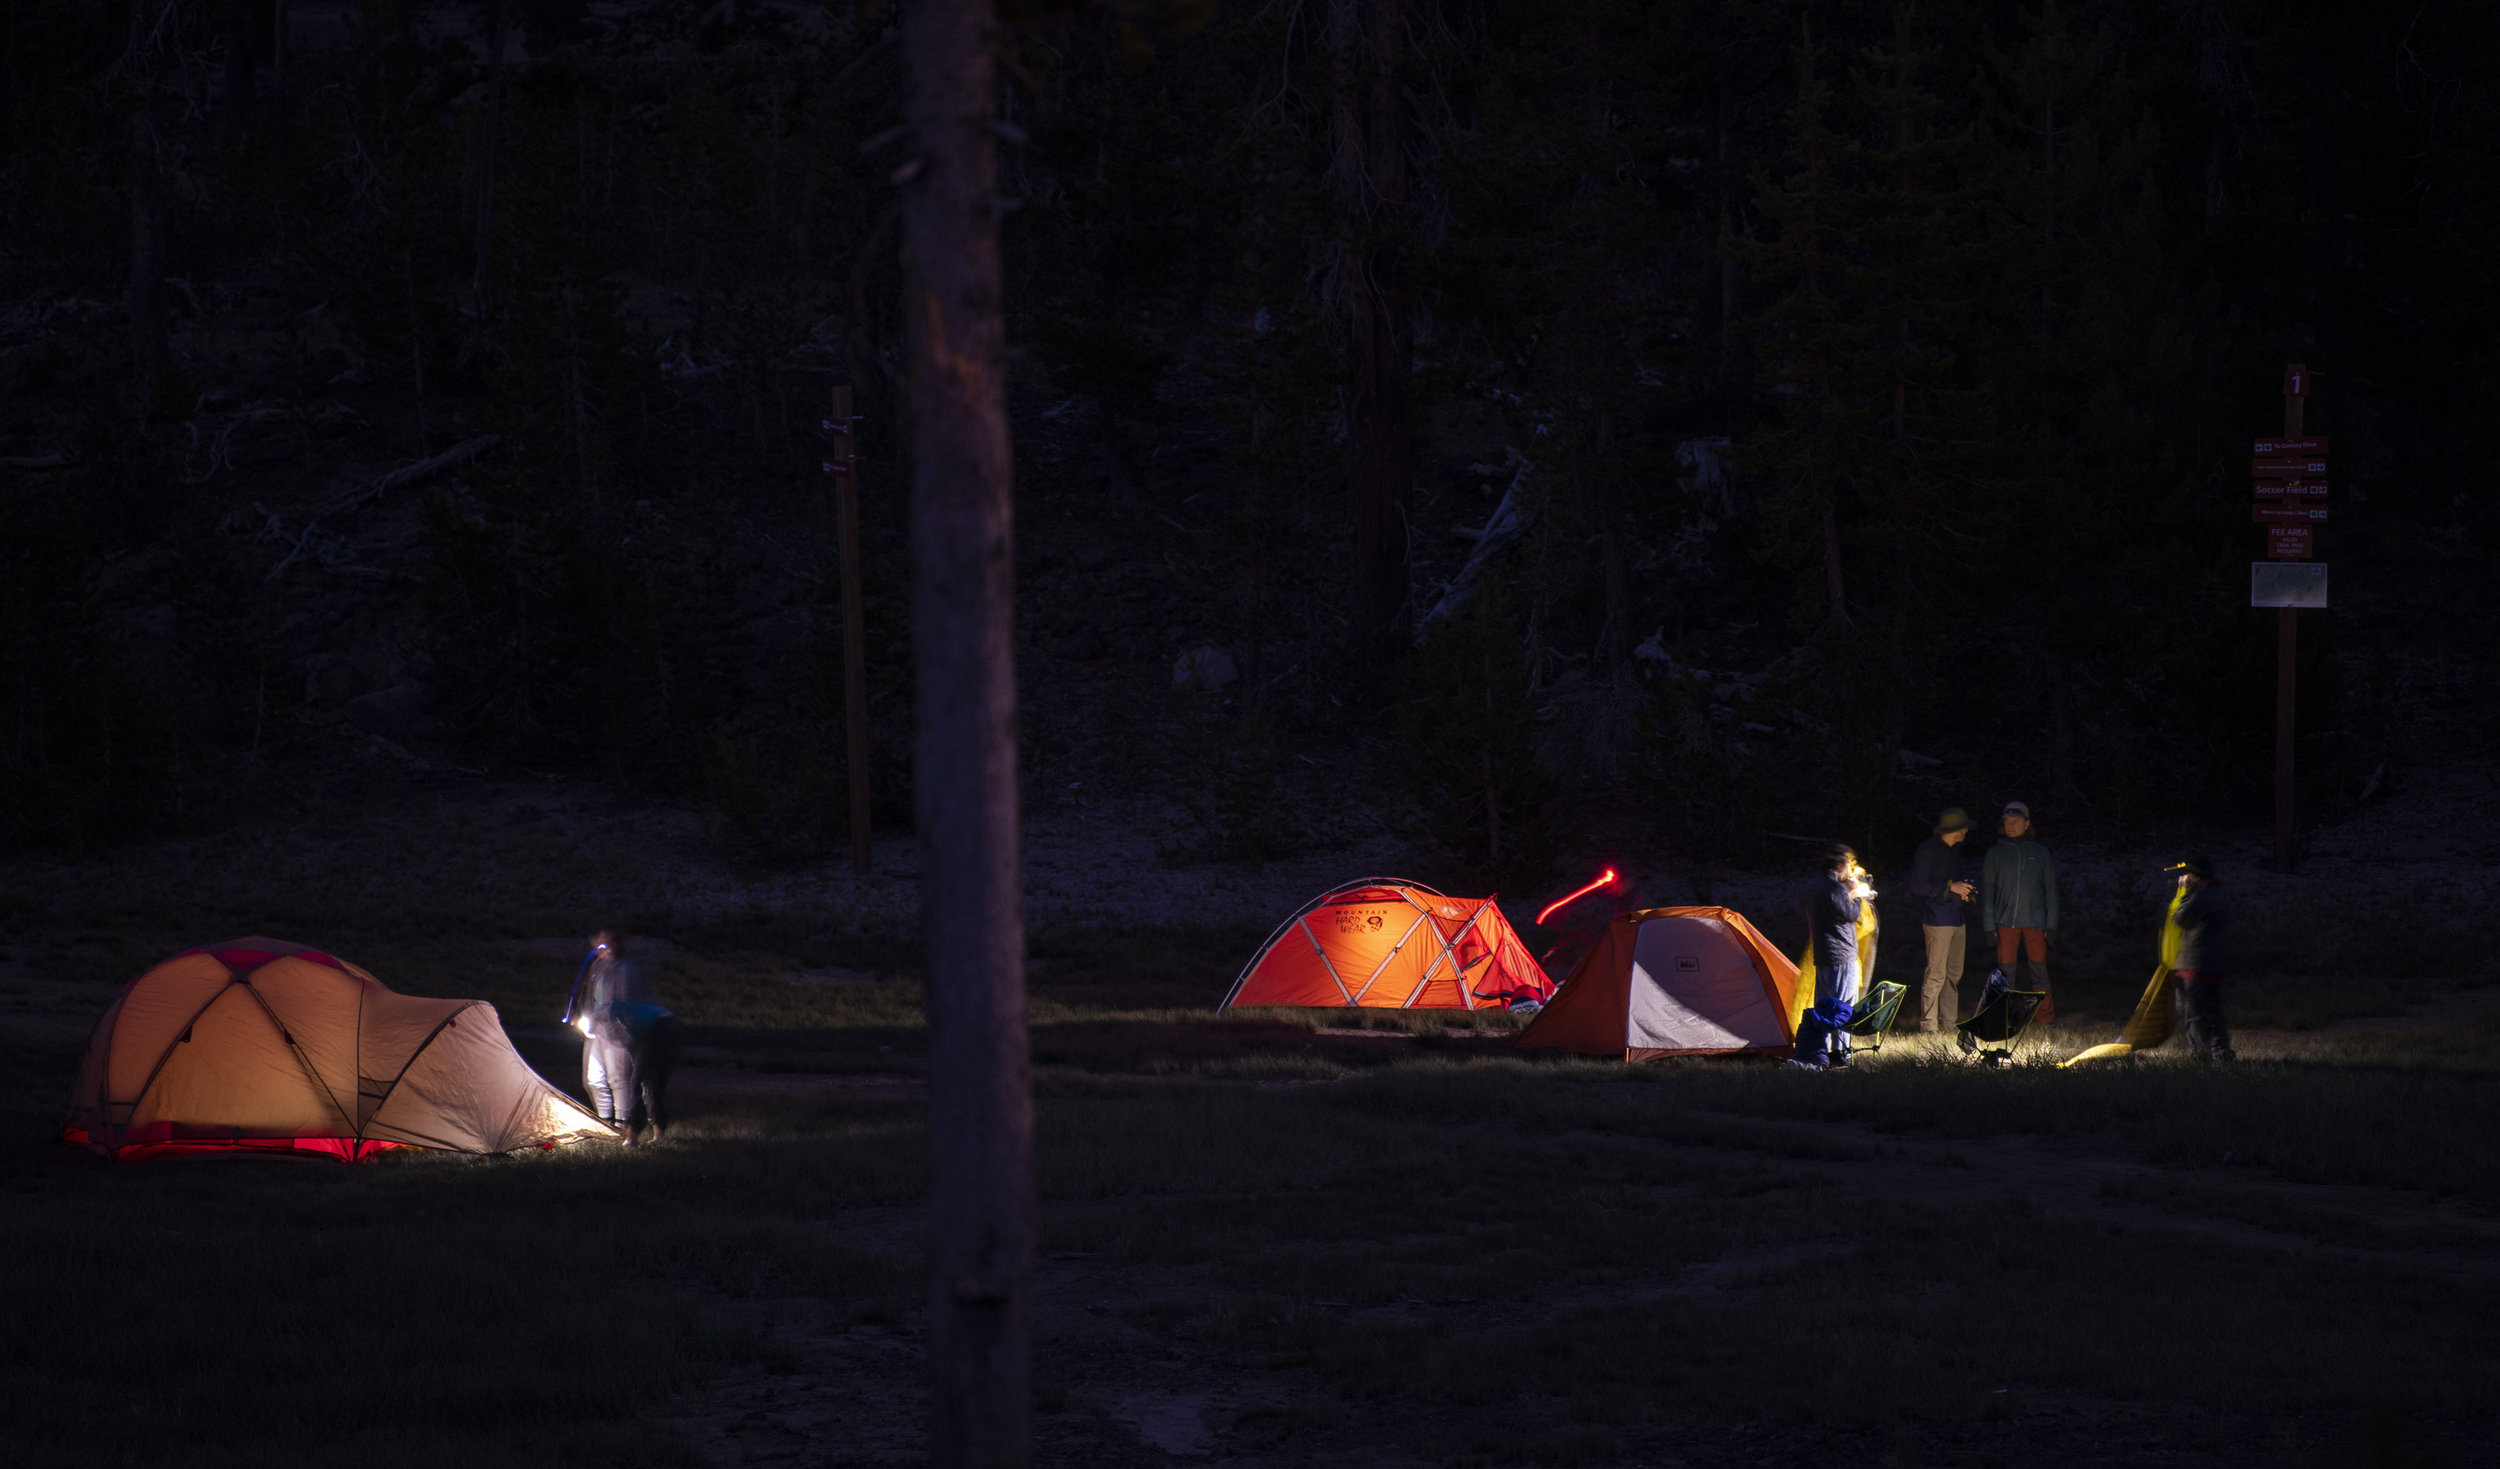 tents @ night.jpg